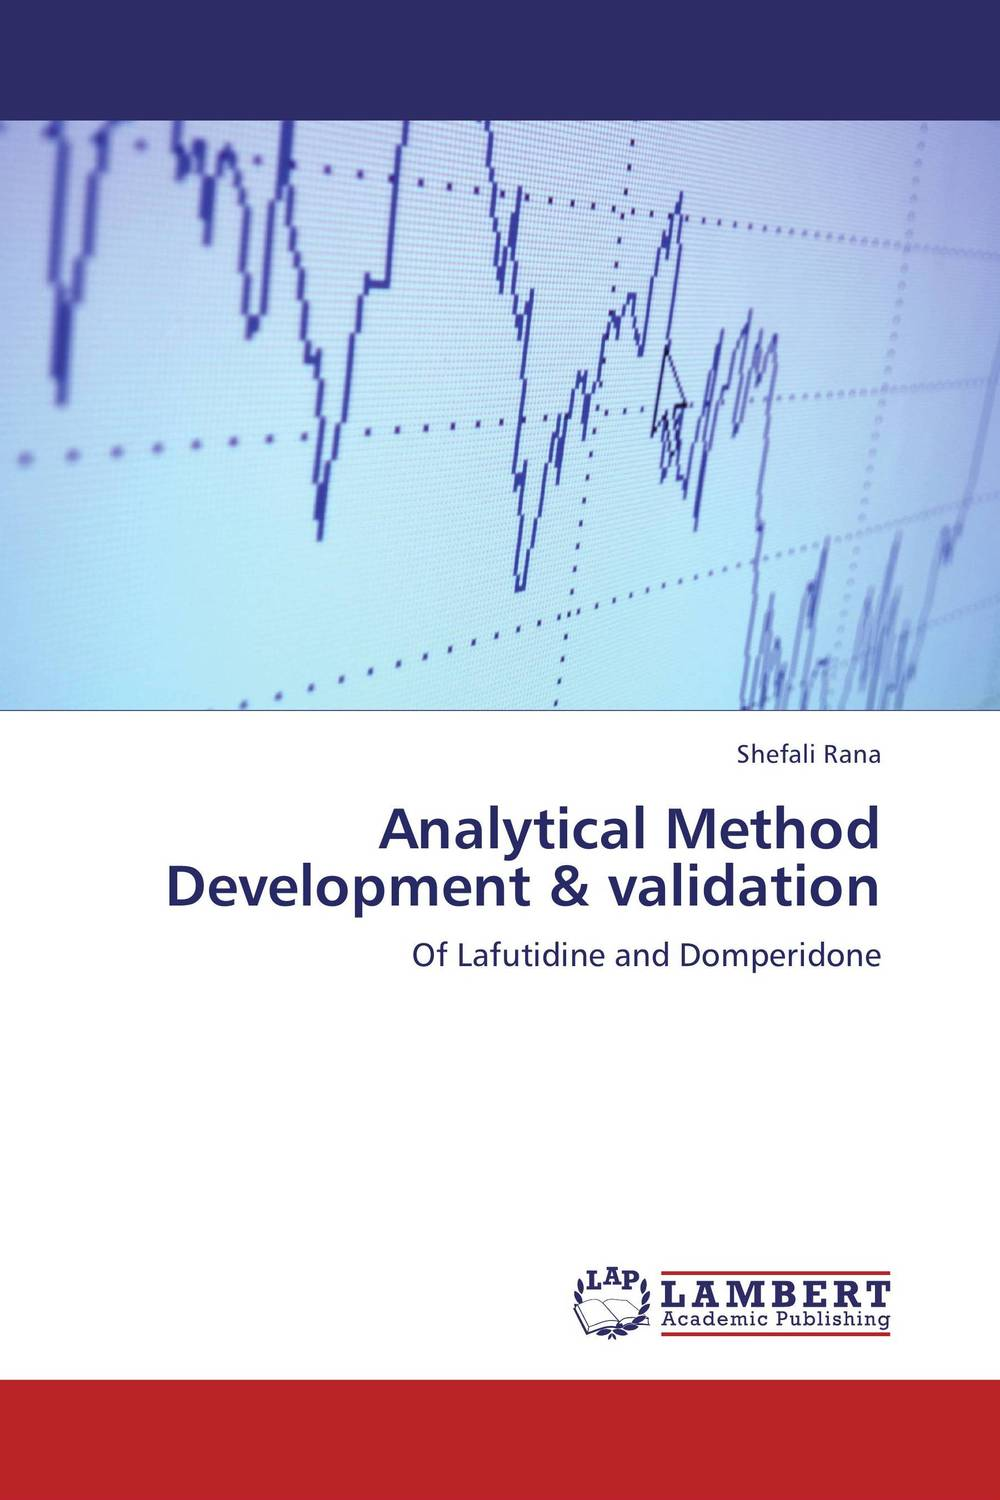 Analytical Method Development & validation analytical method development